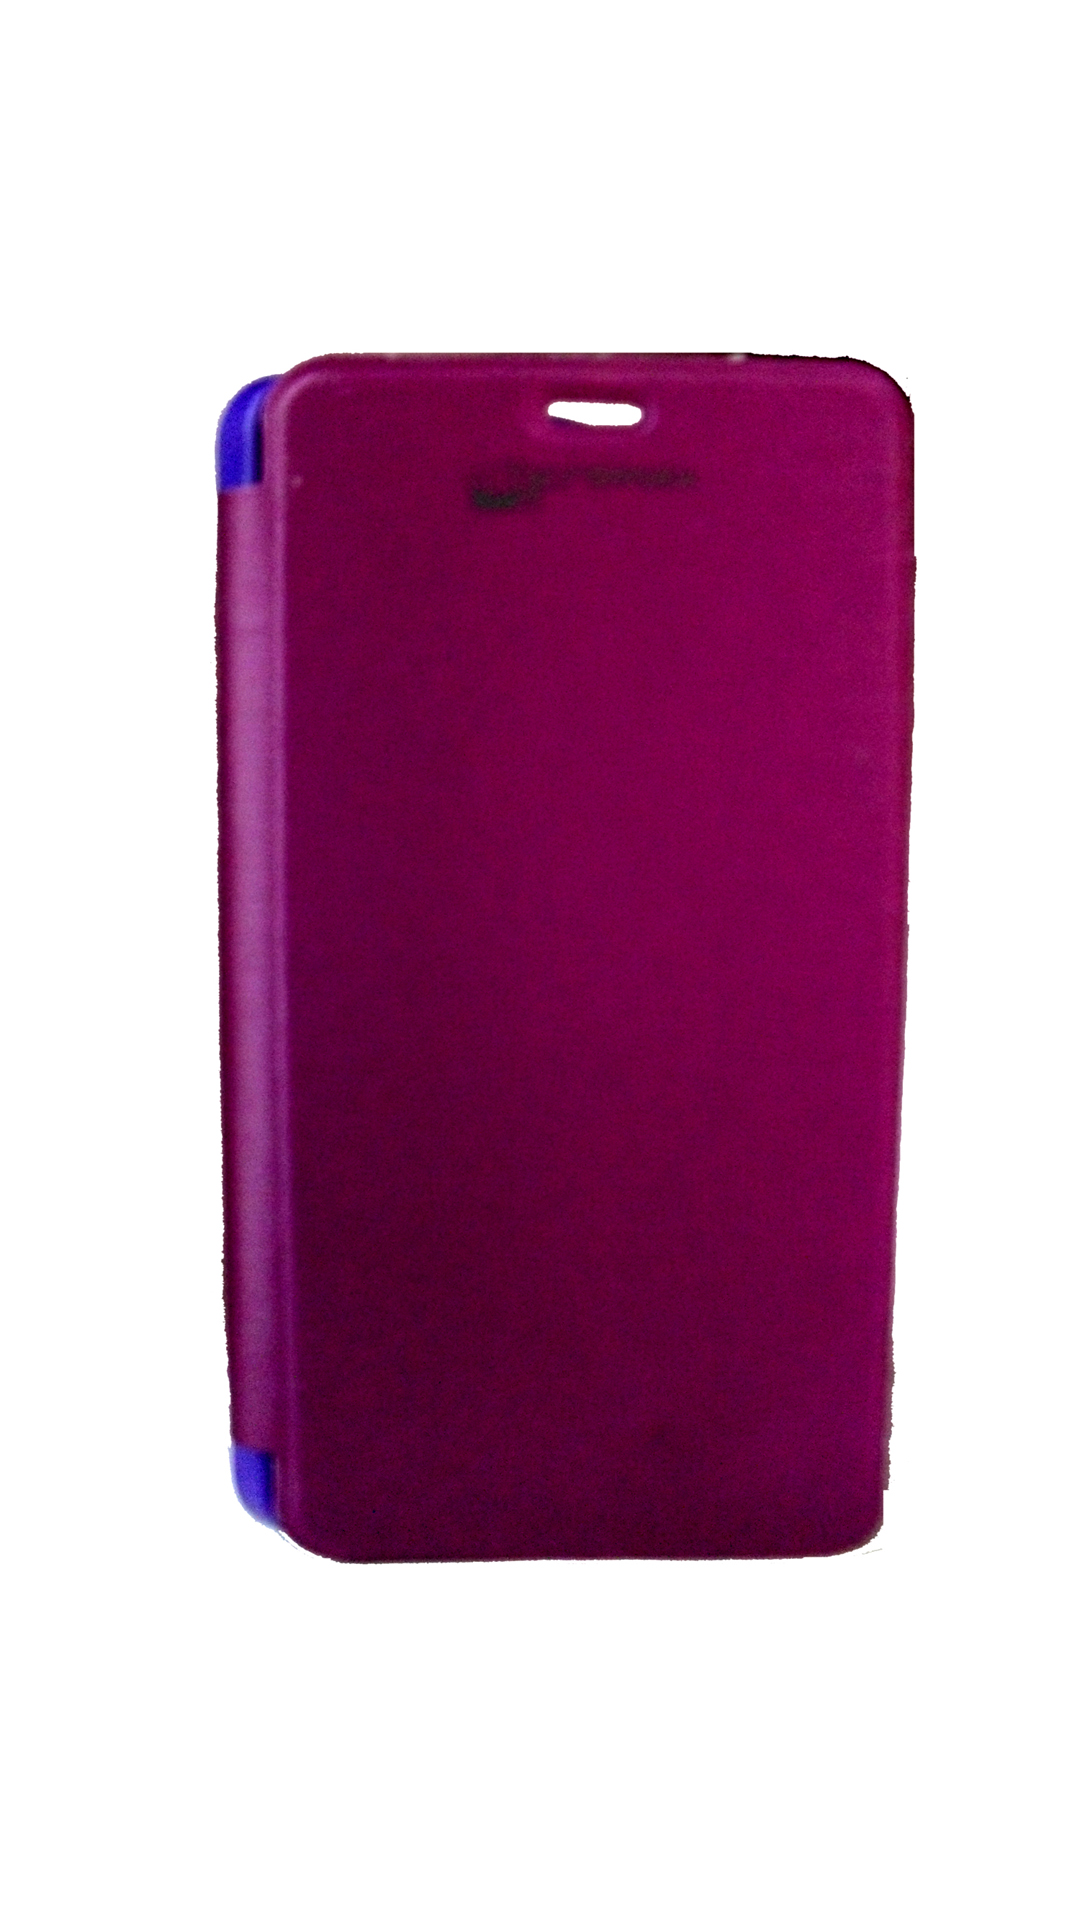 HNY`s Flip Cover For Micromax A67 Bolt  Purple  available at Paytm for Rs.215